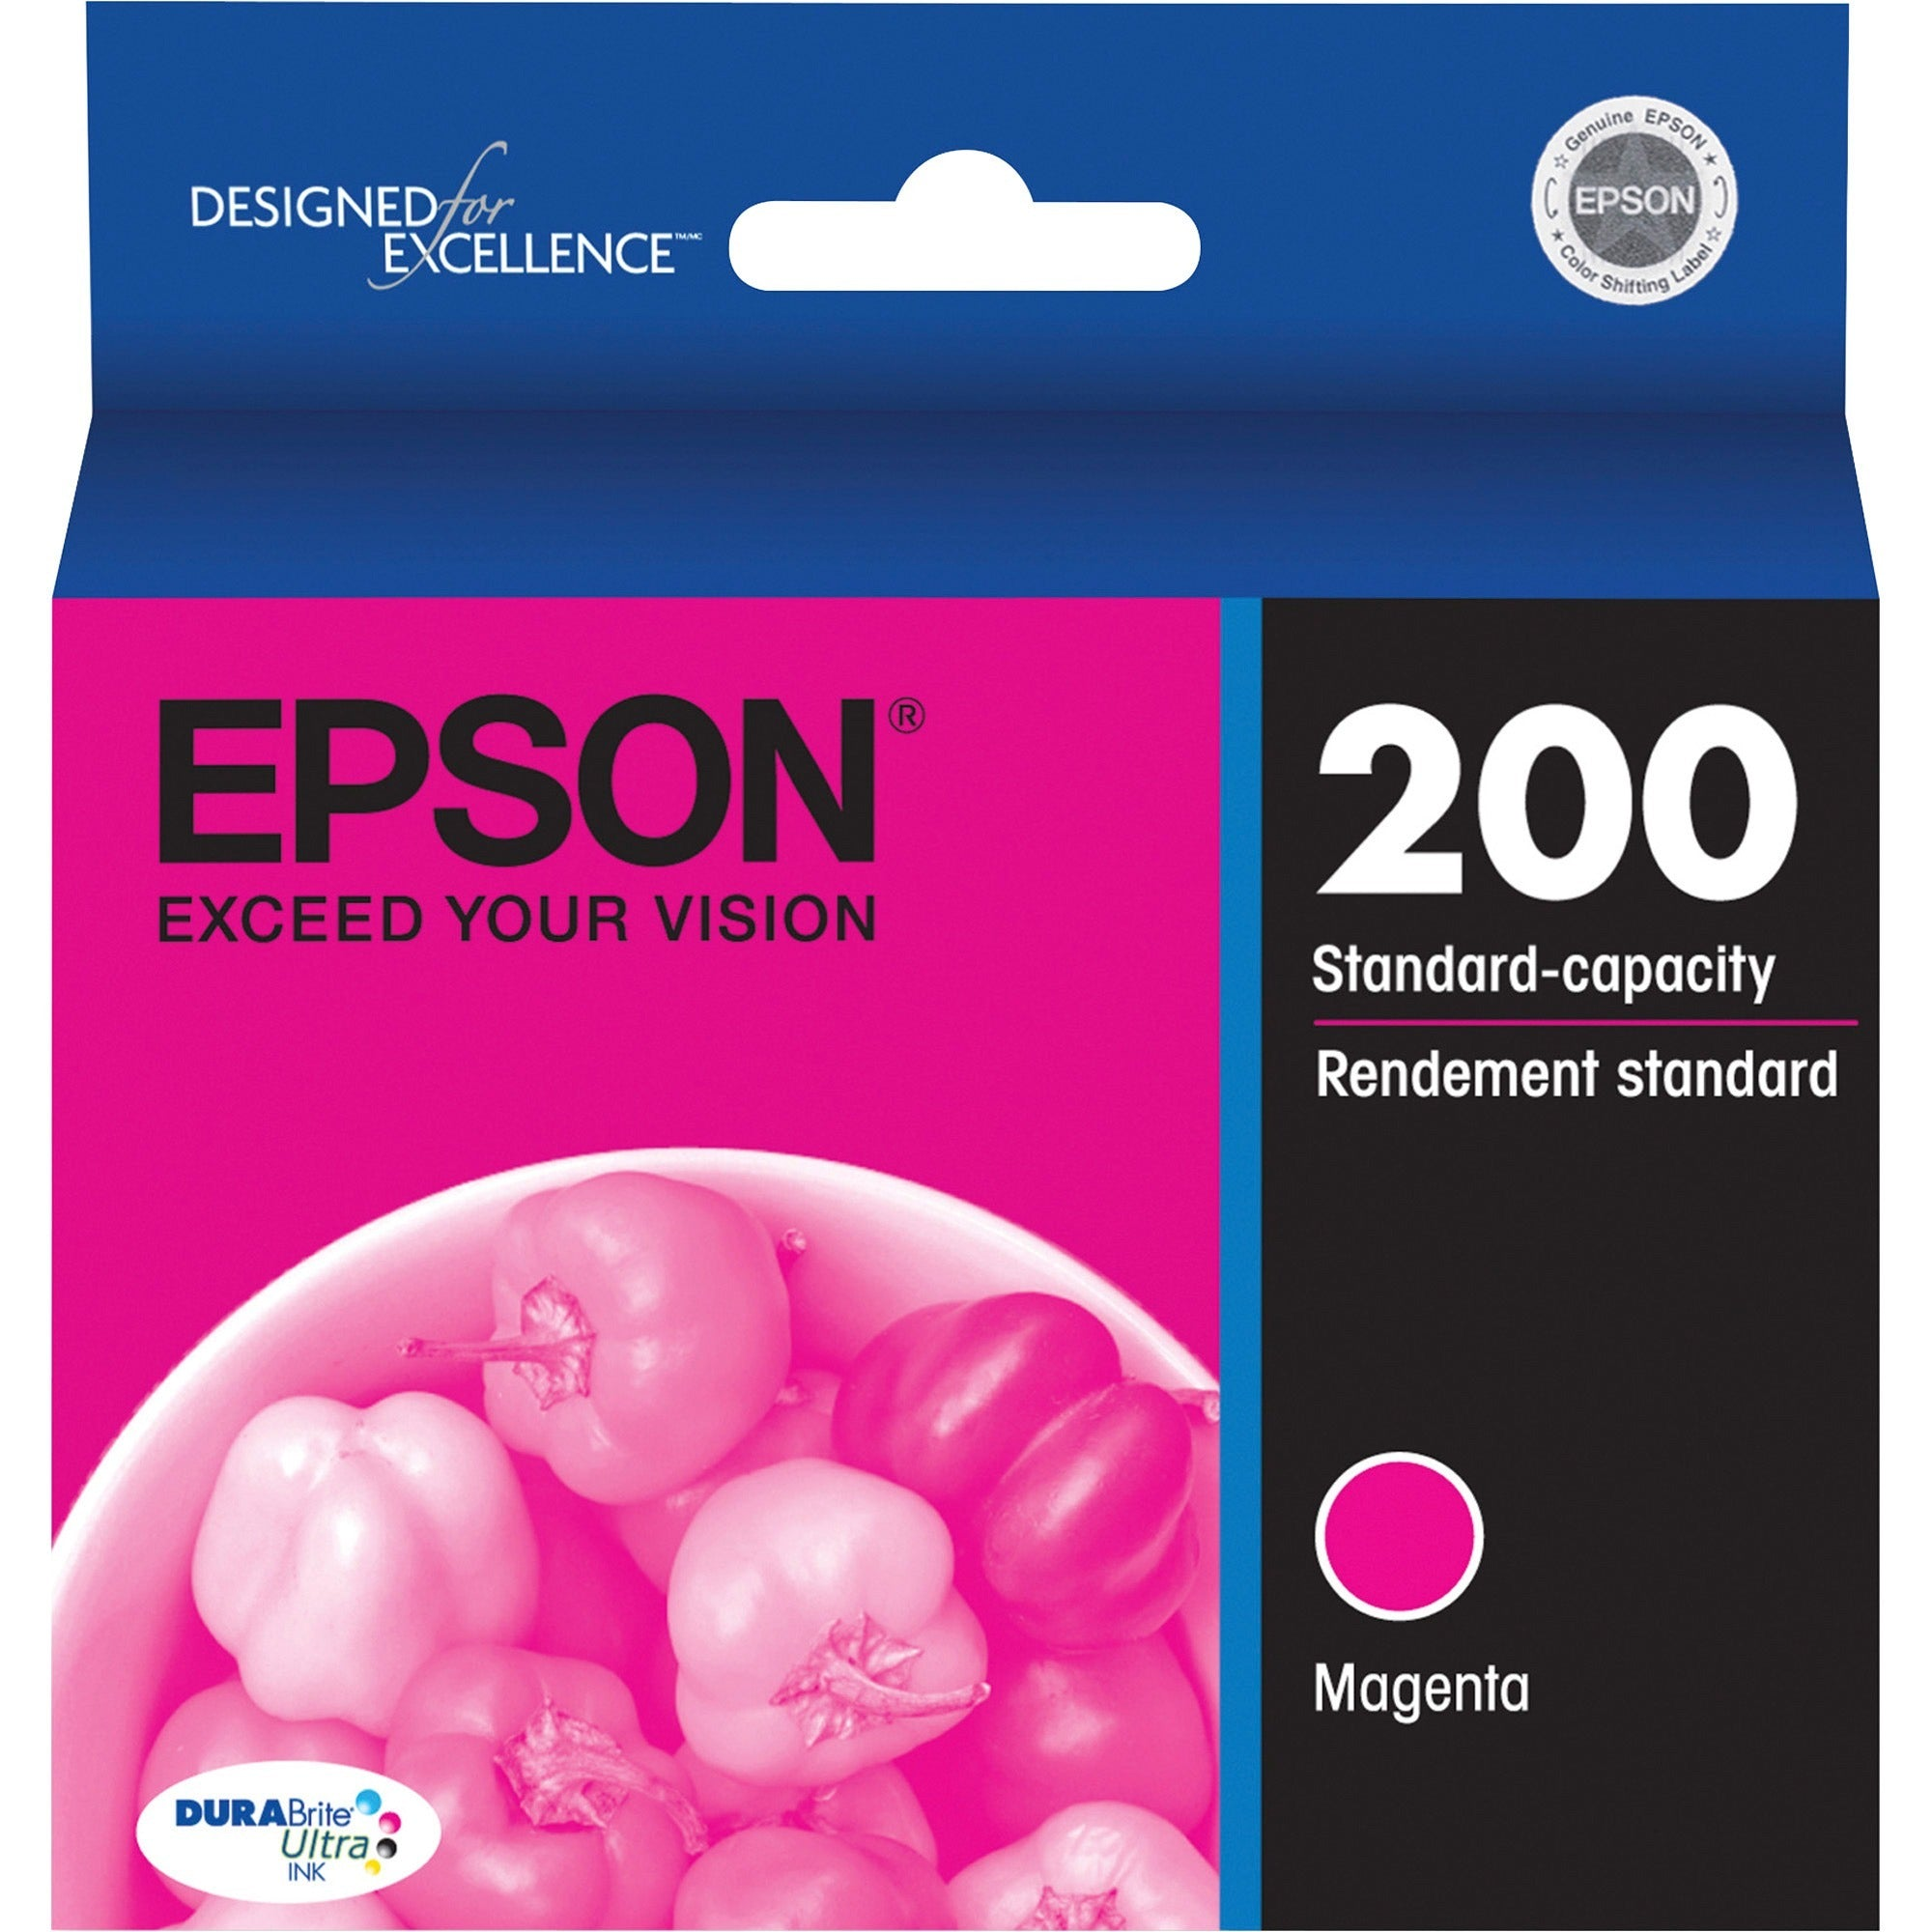 Epson DURABrite Ultra 200 Original Ink Cartridge